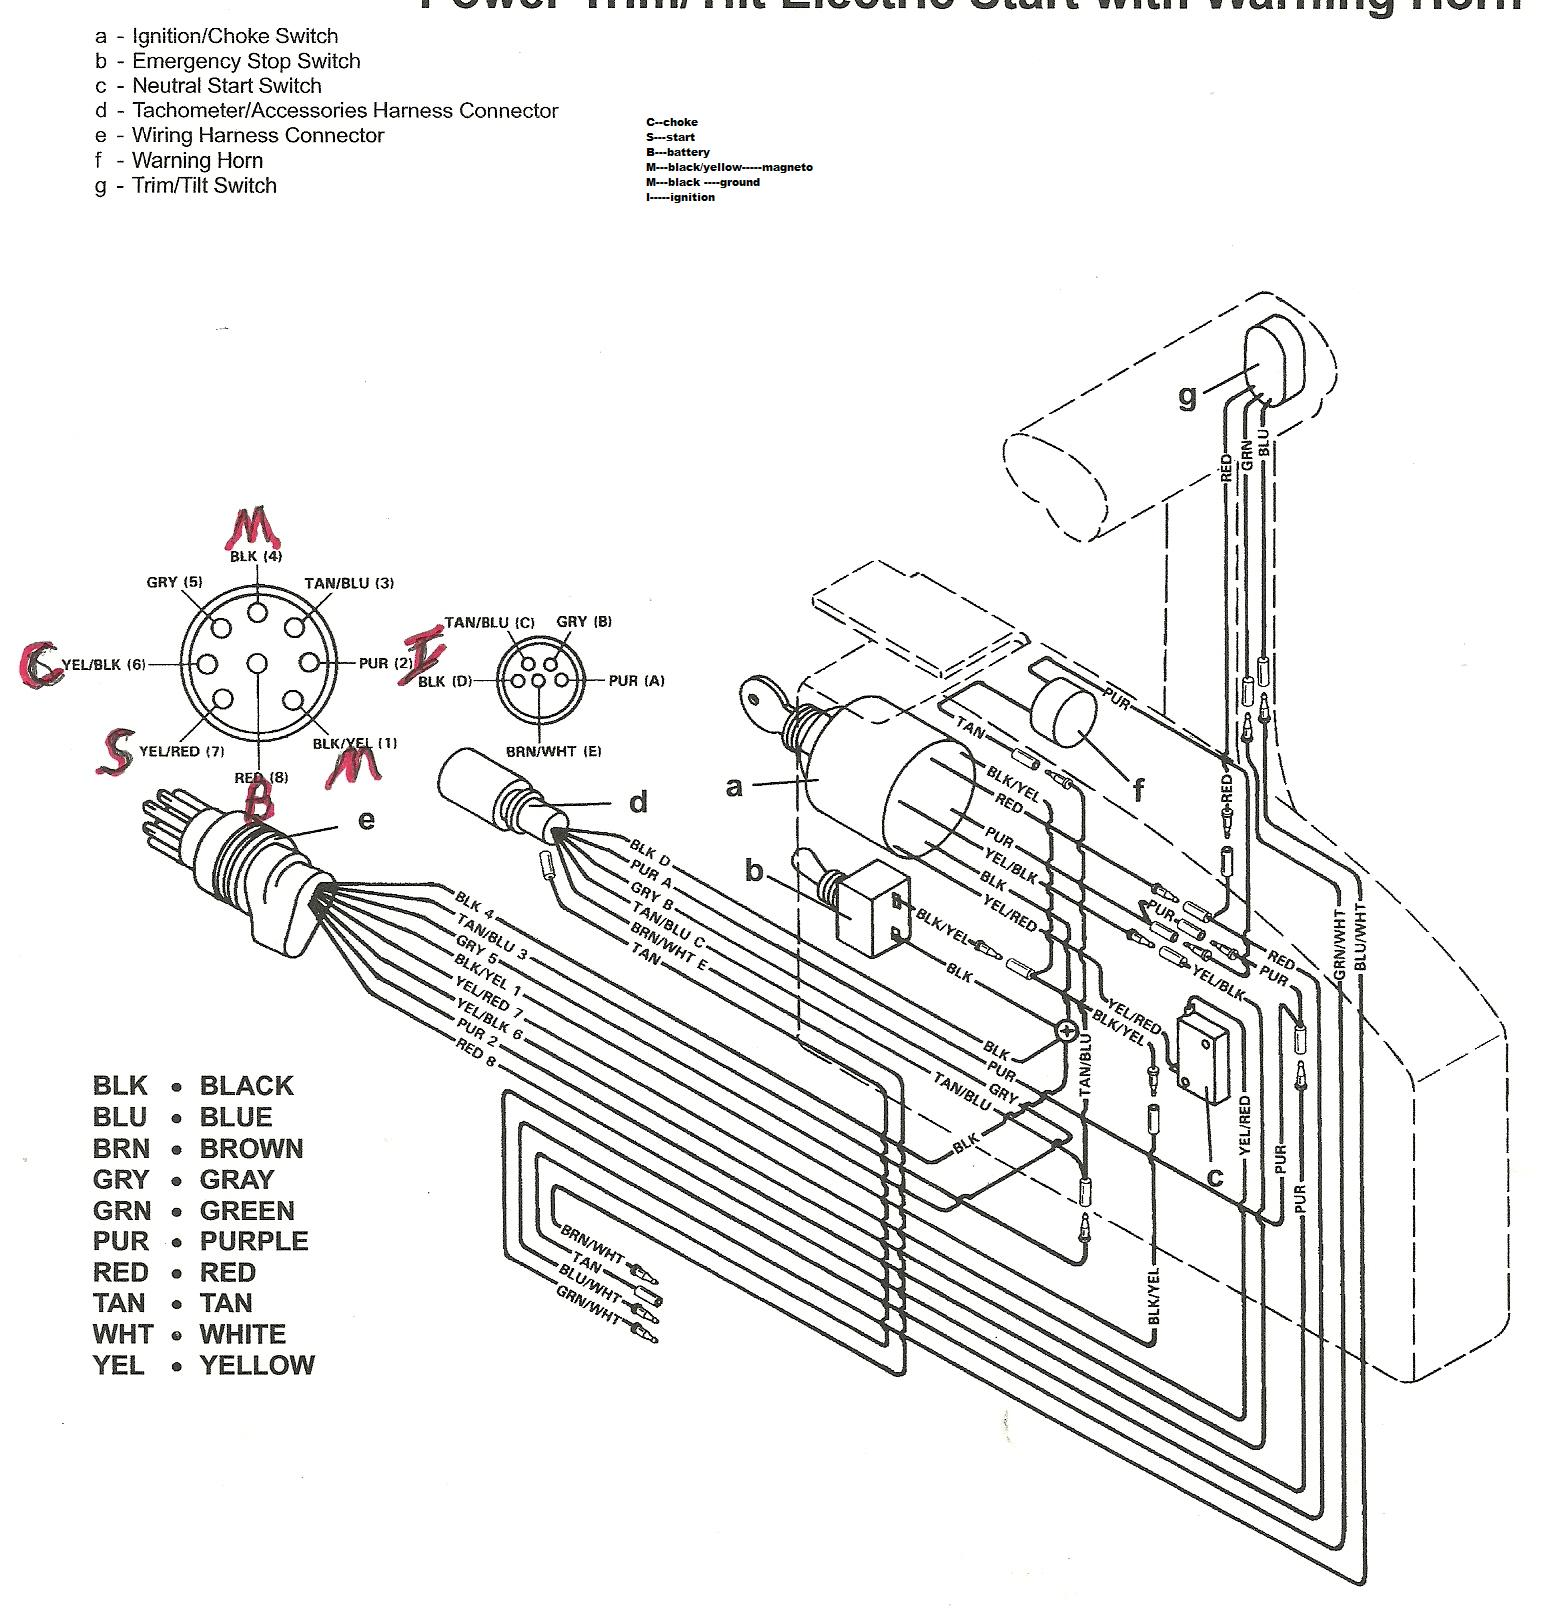 yamaha outboard motor wiring diagrams the wiring diagram motor wiring diagram 19 motor car wiring diagram wiring diagram